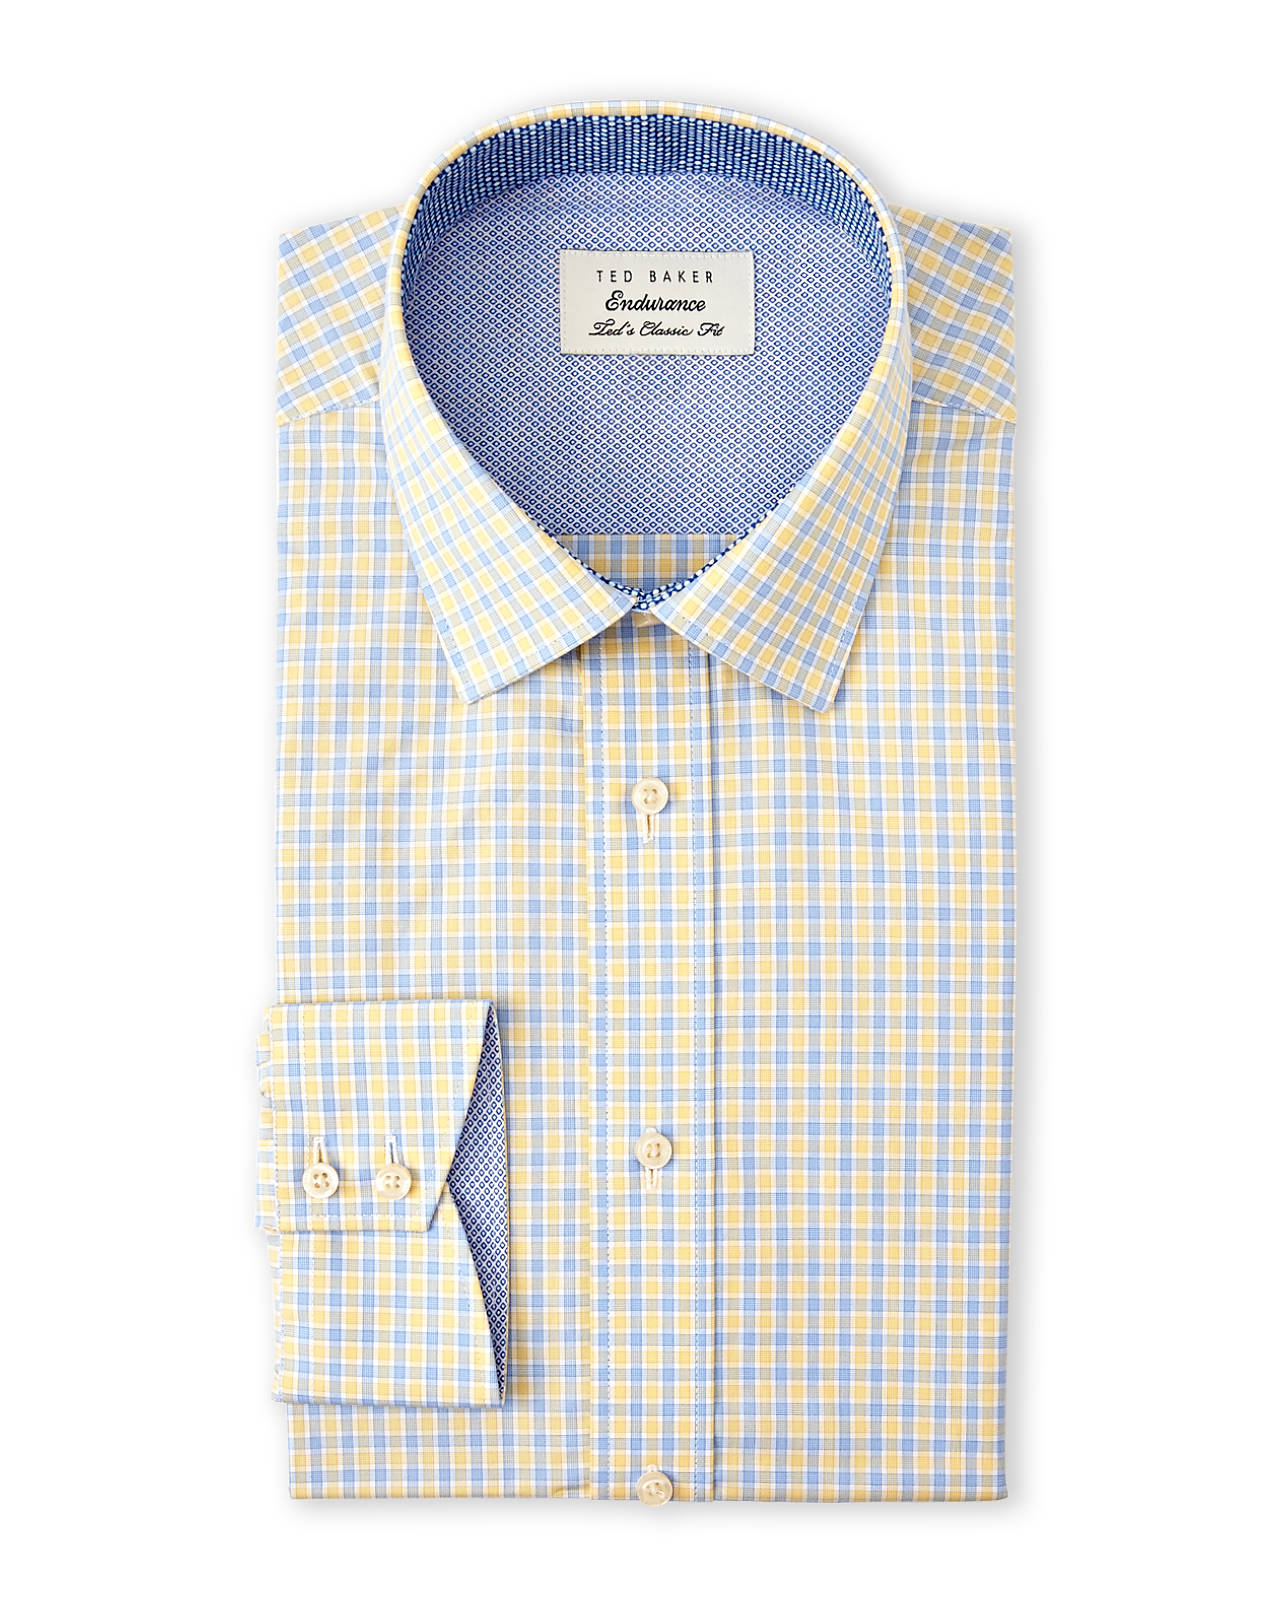 ted baker yellow blue plaid classic fit dress shirt in